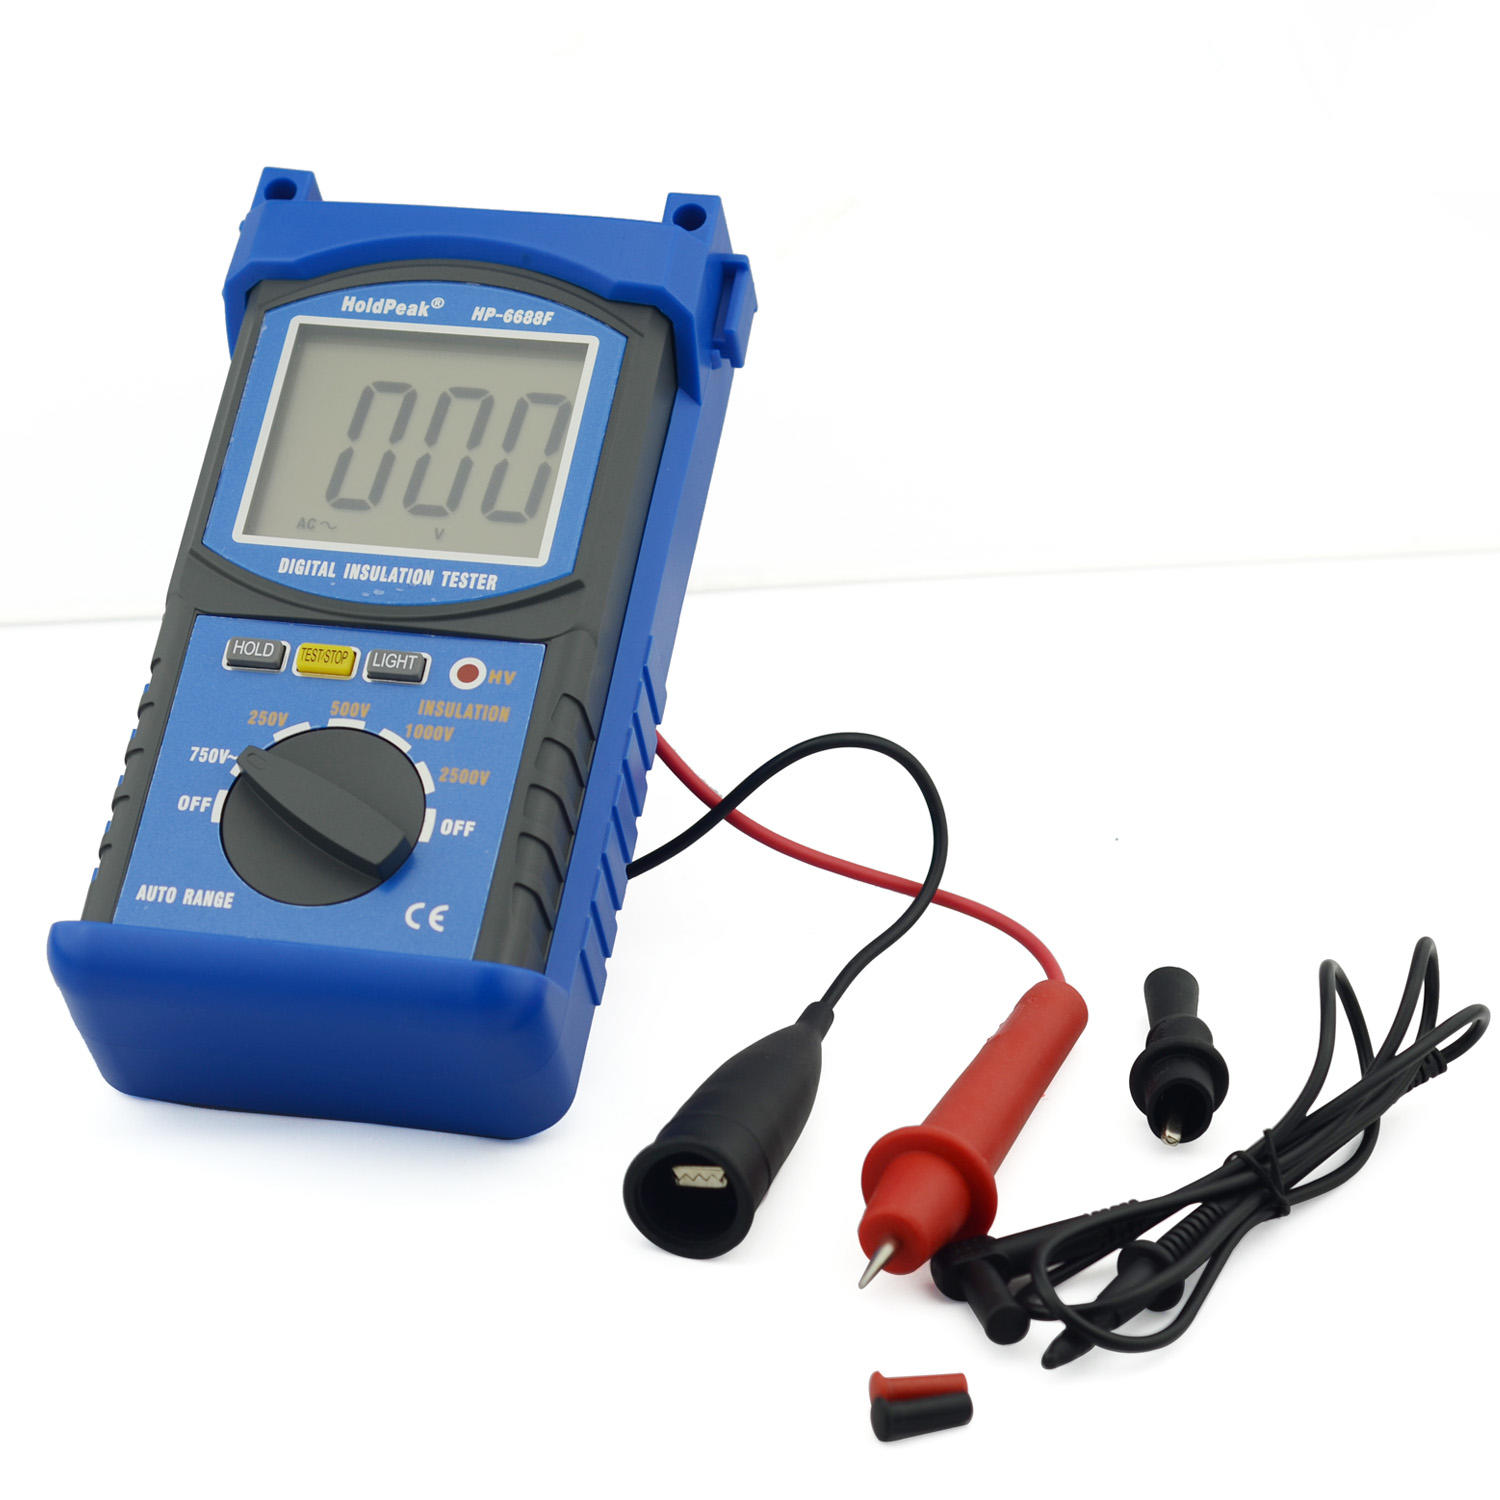 digital analog insulation tester hp6688b for verification HoldPeak